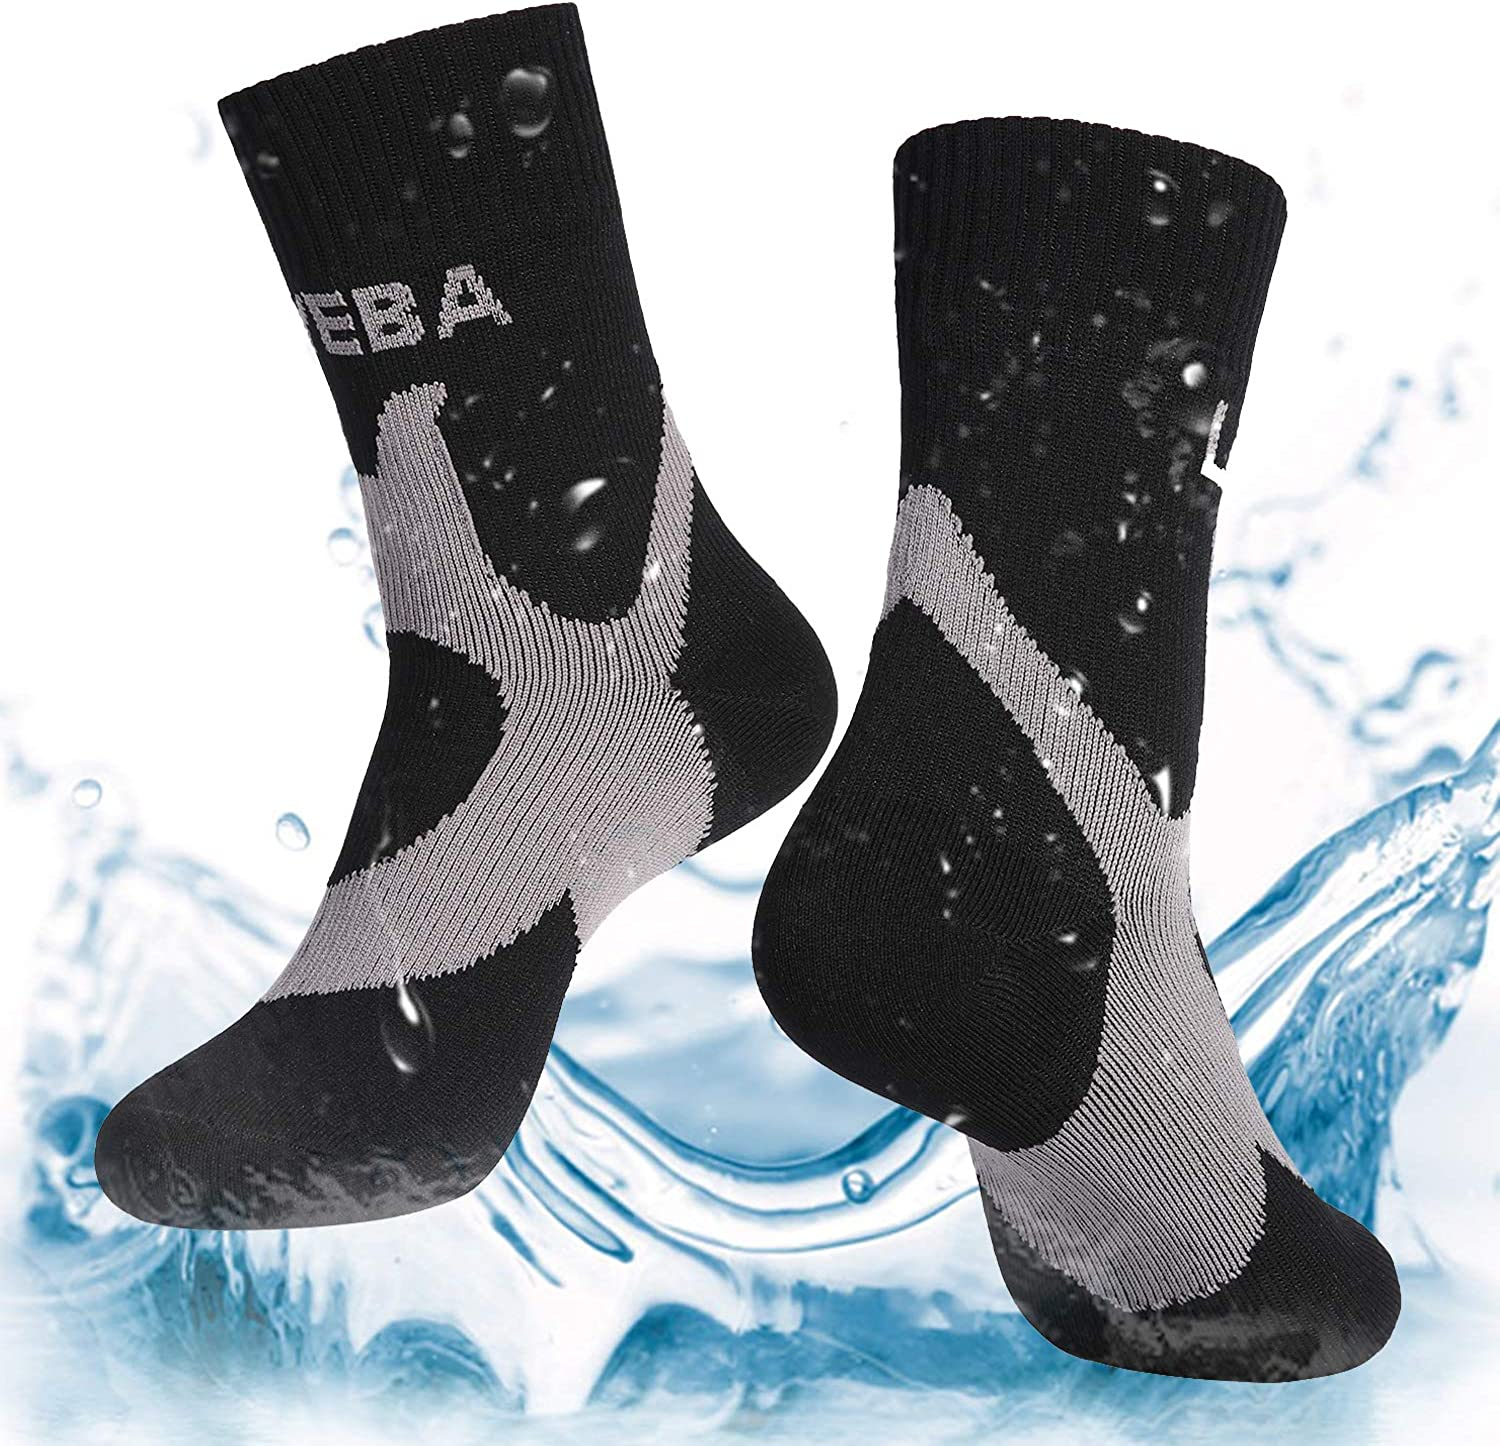 SGS Certified Trekking Cycling Hiking Skiing Unisex Mid-Calf Socks HyperShellz Waterproof Socks